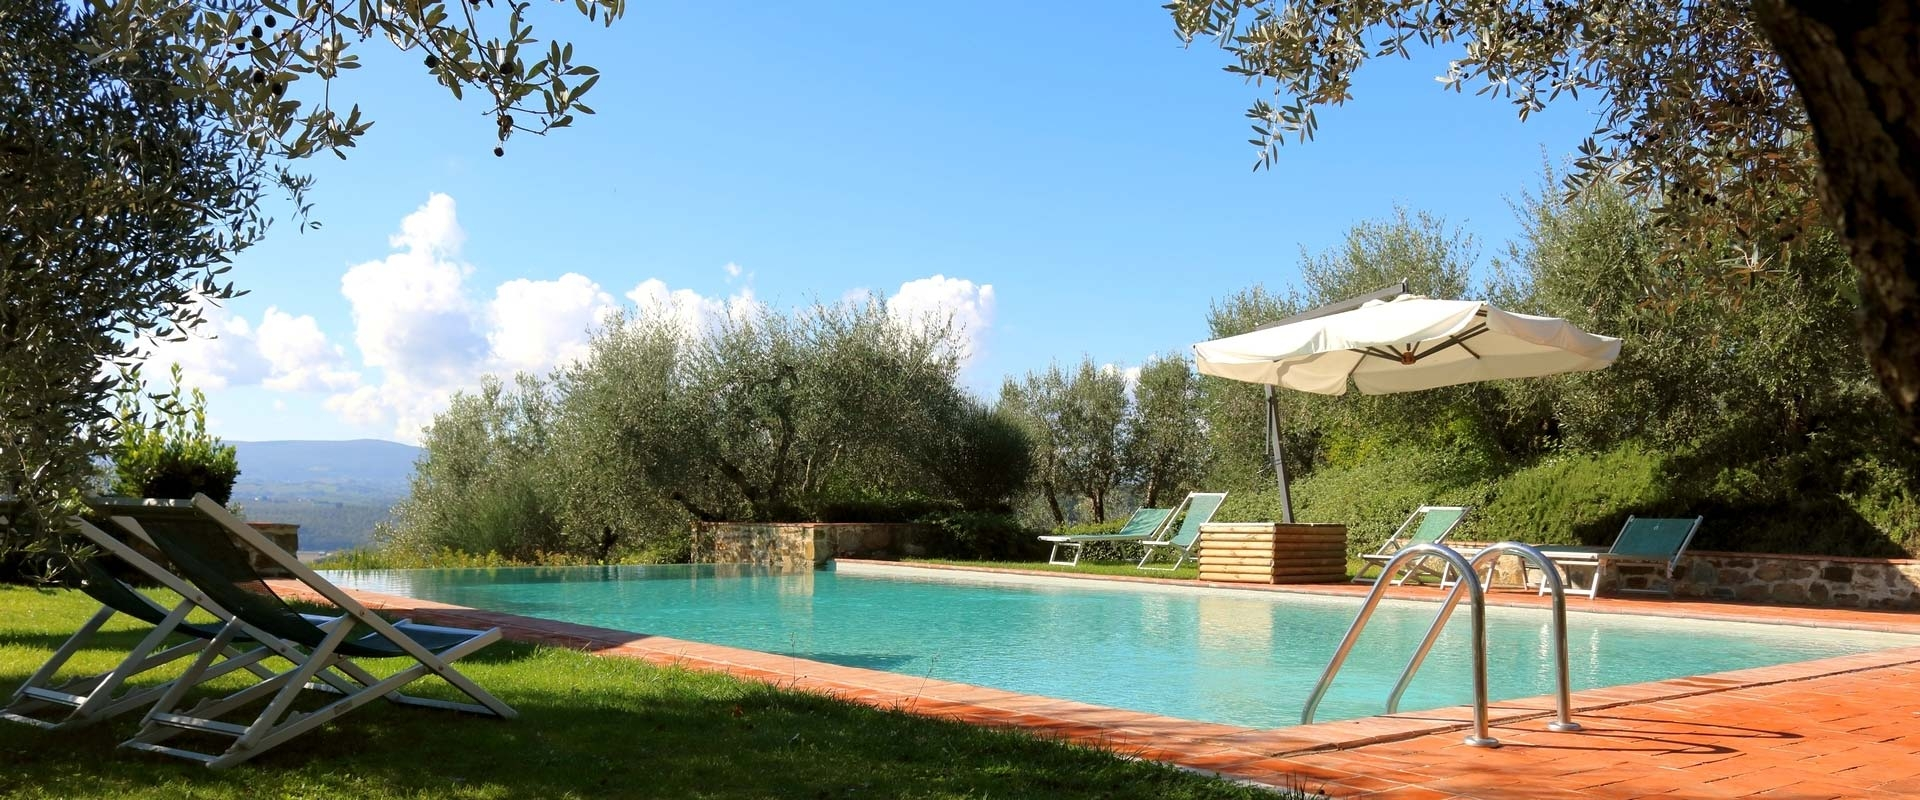 Suggestive swimming pool among the olive trees